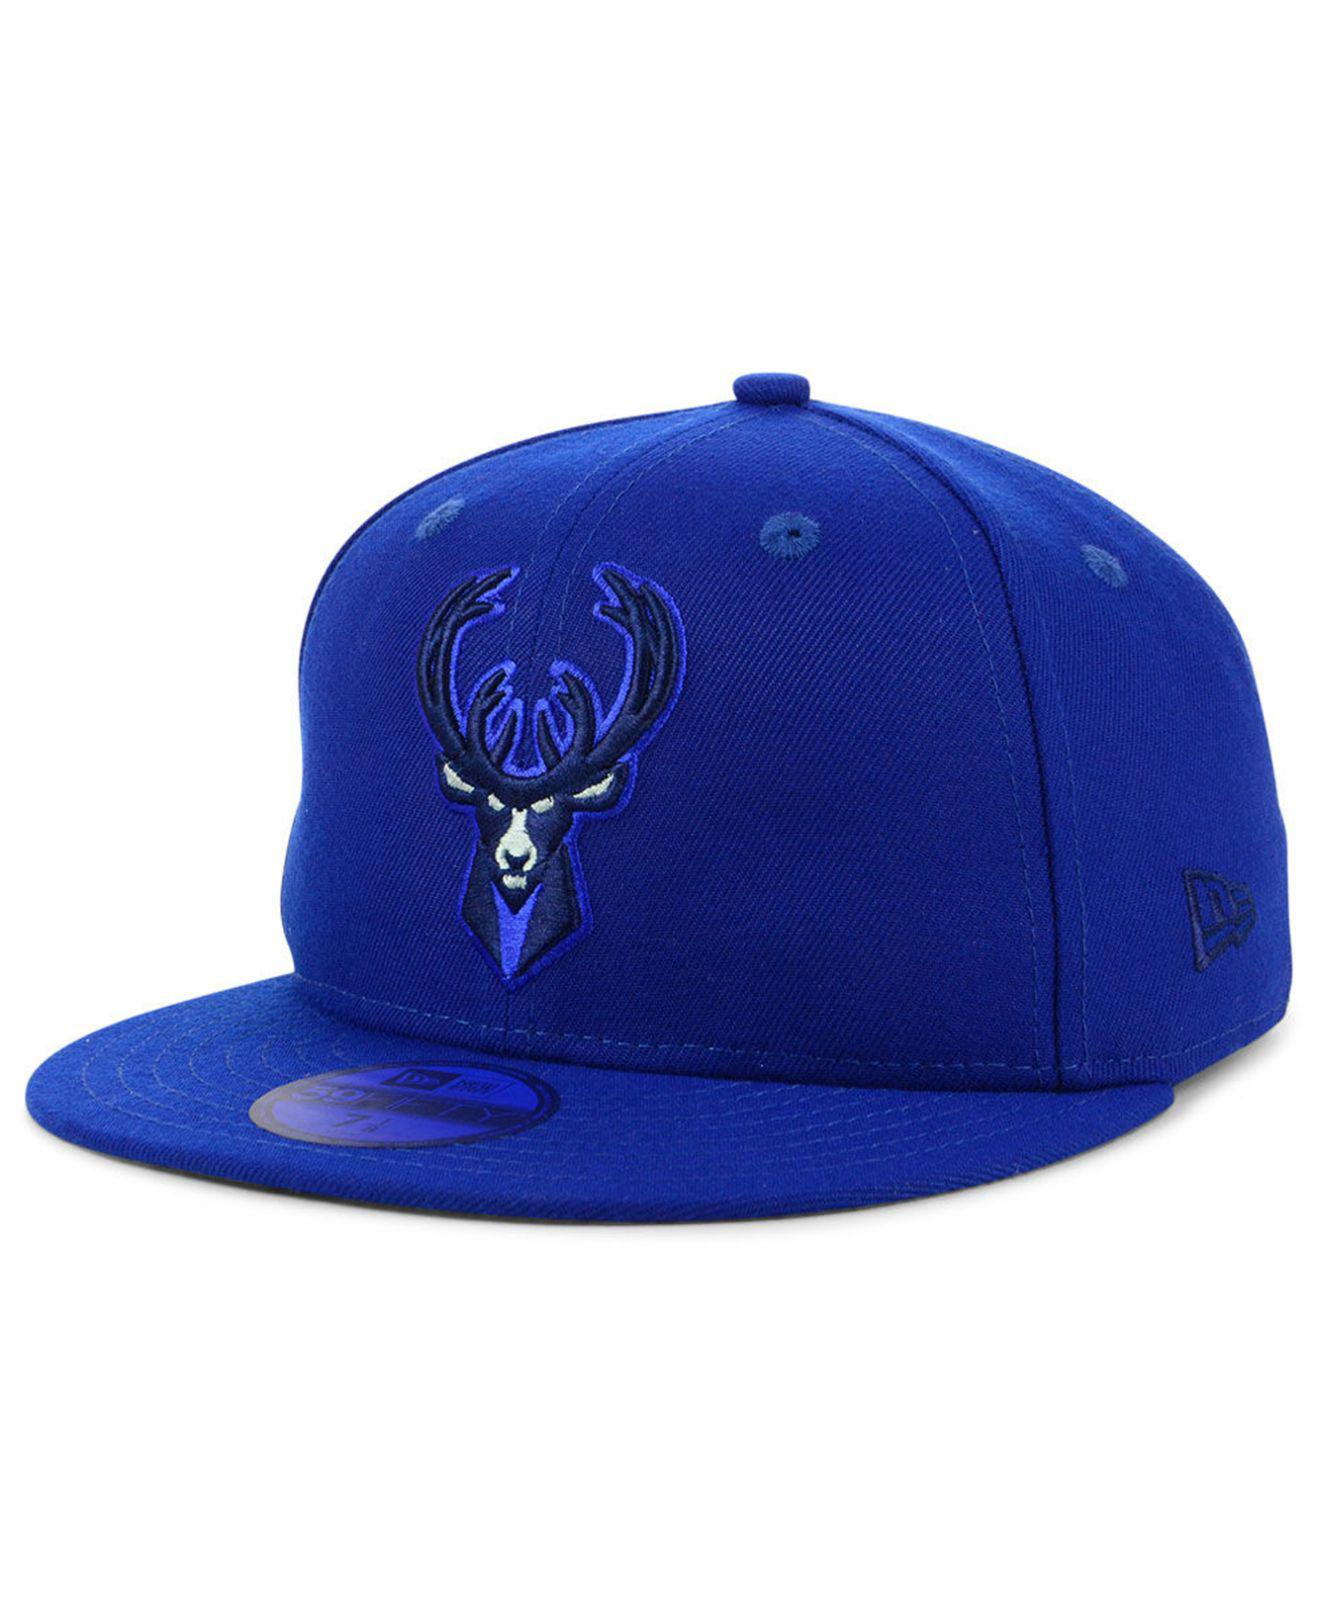 new product fd18c db4c3 ... new era nba color prism pack 59fifty cap 103e3 83109  discount code for  ktz. mens blue milwaukee bucks color prism pack 59fifty fitted cap 60967